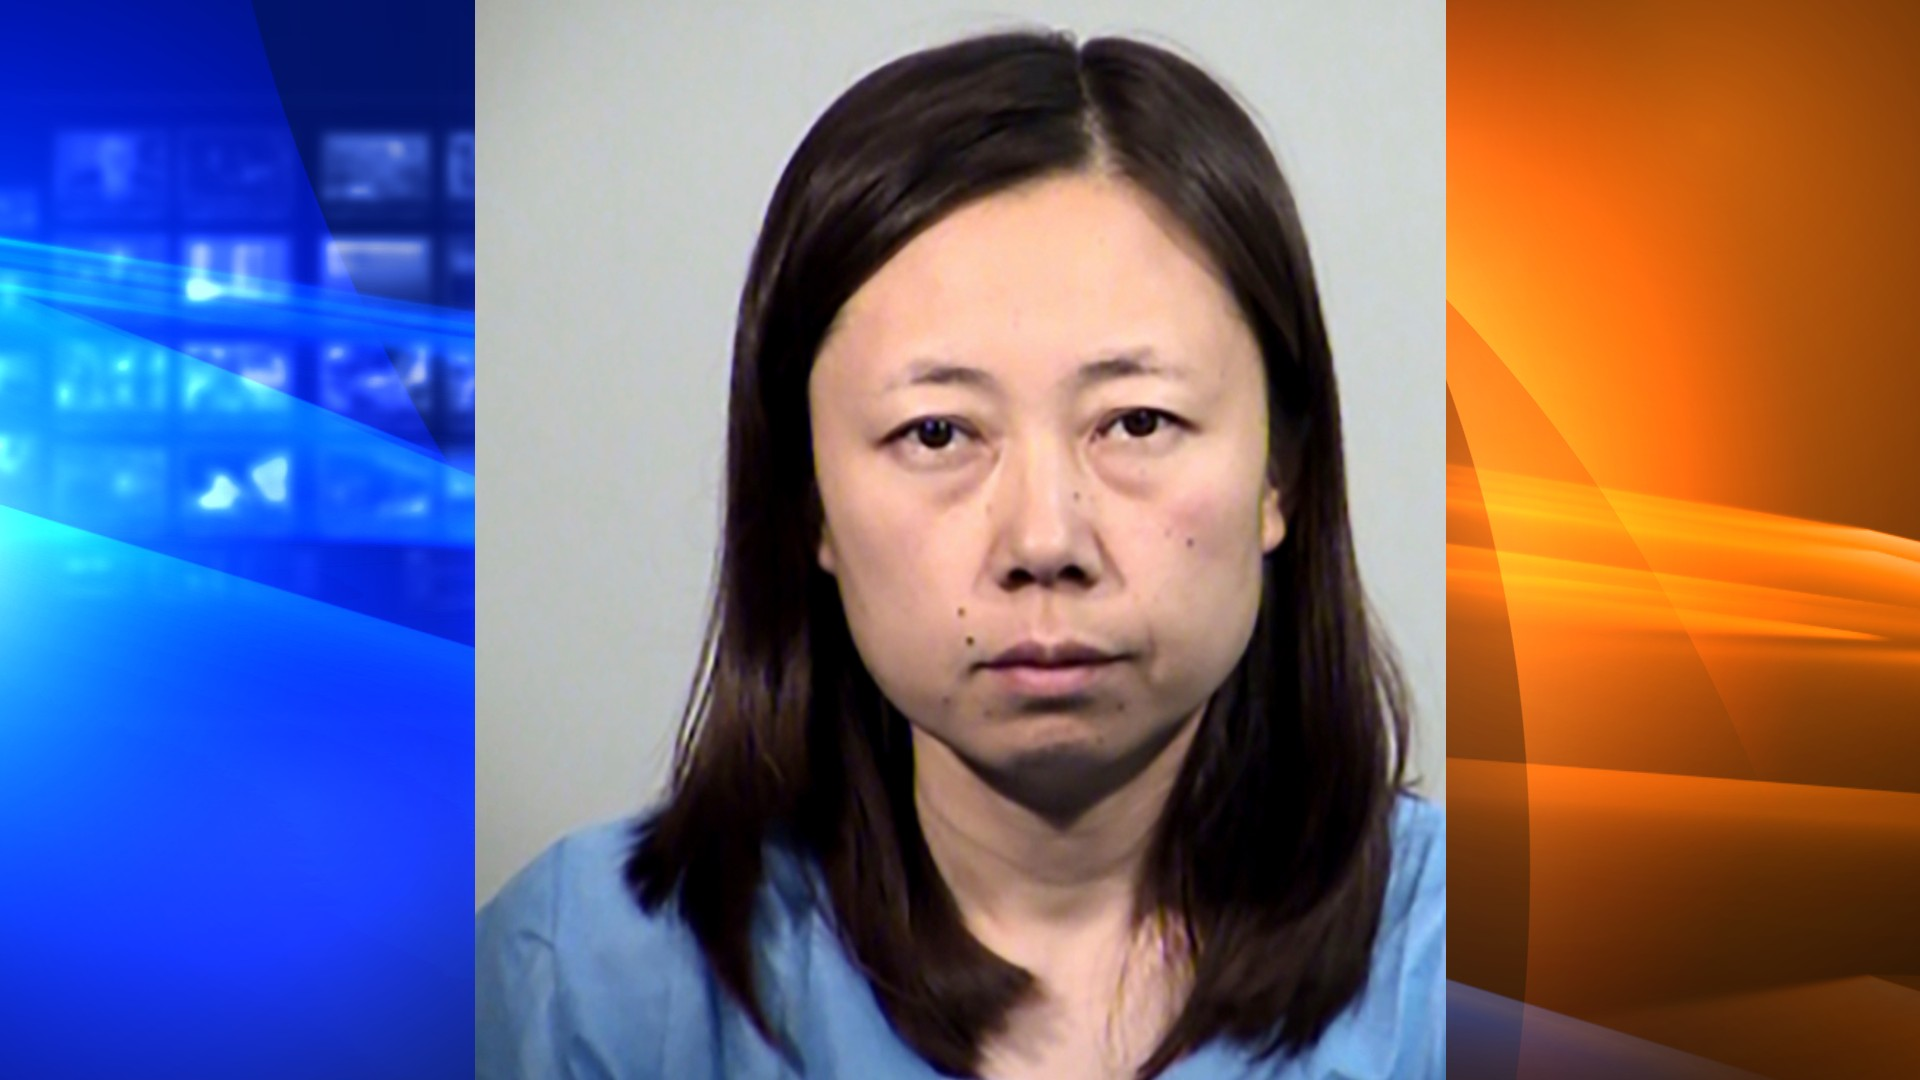 This Saturday, May 15, 2021, booking photo released by Tempe Police Department shows Yui Inoue, 40, who is jailed for allegedly killing her two children in Tempe, Ariz. (Tempe Police Department via AP)